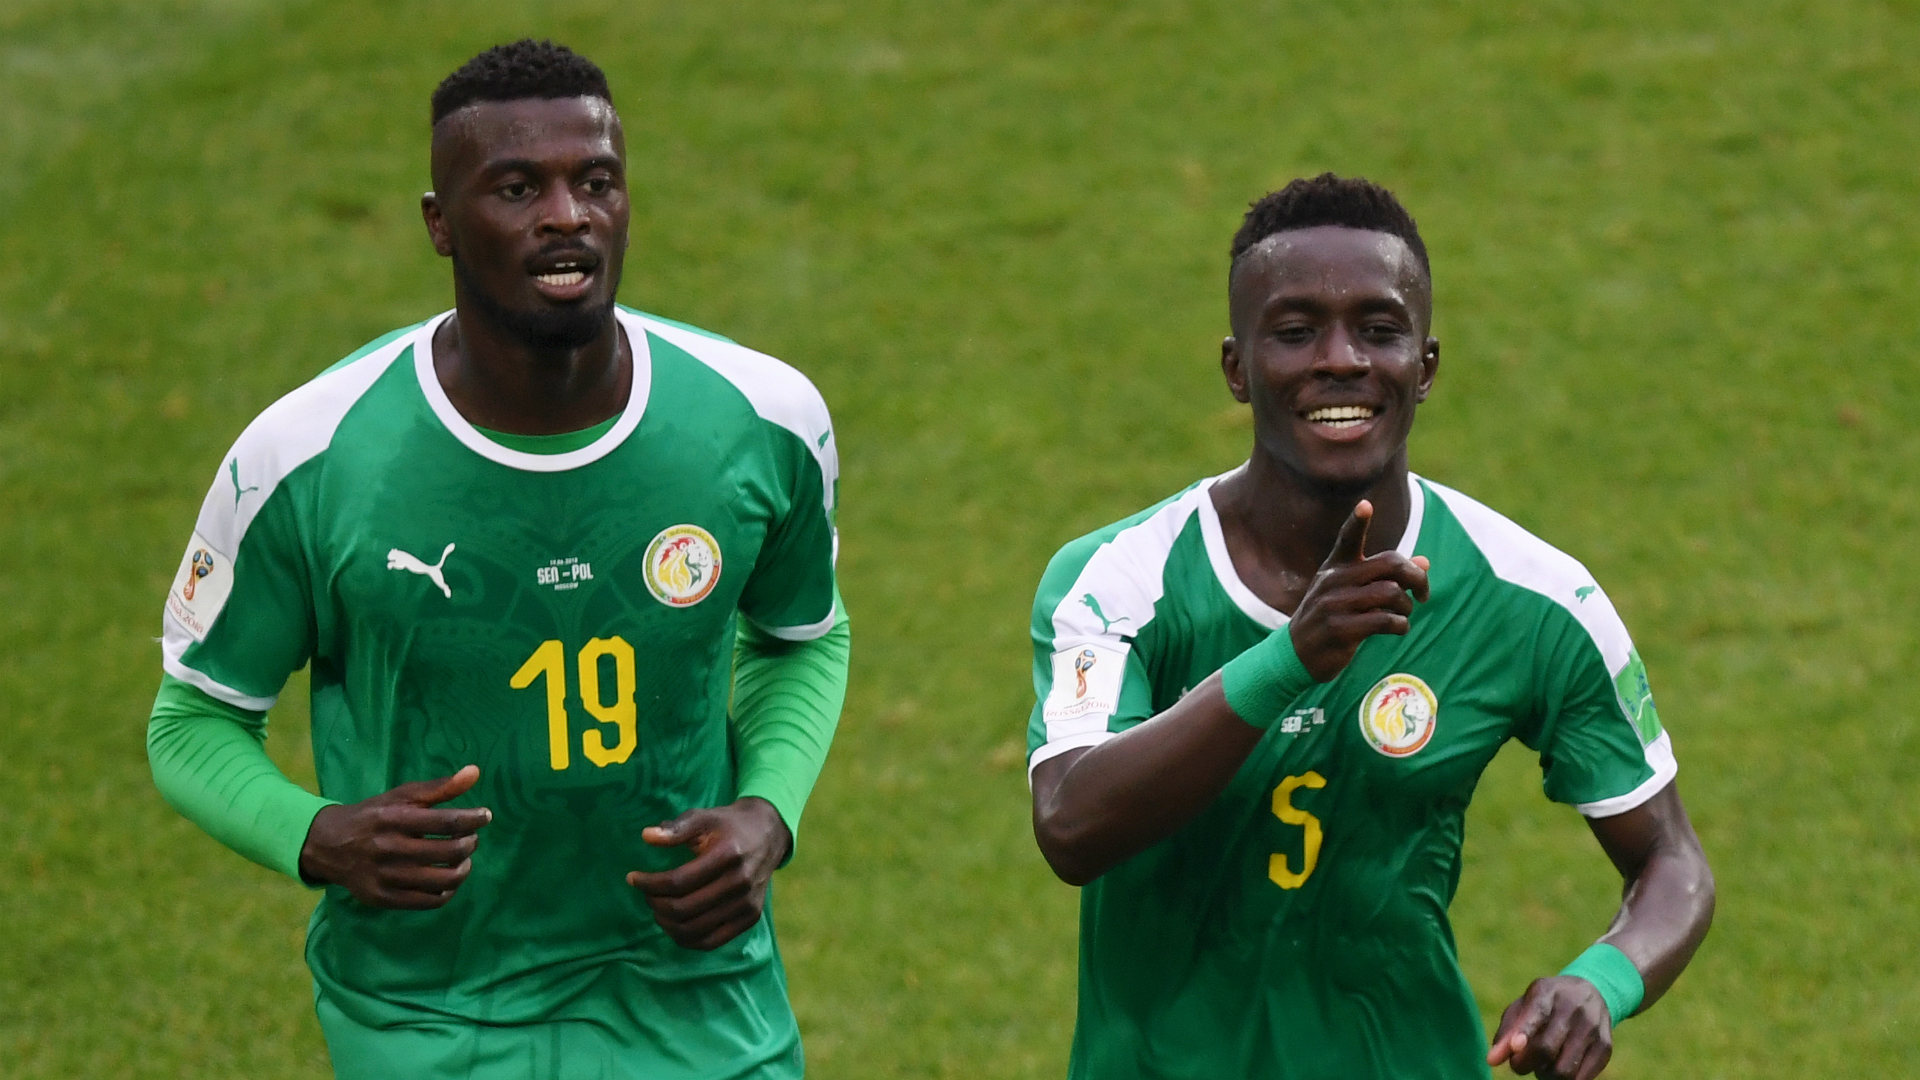 Afcon 2019: Africa reacts to Senegal reaching the semi-finals